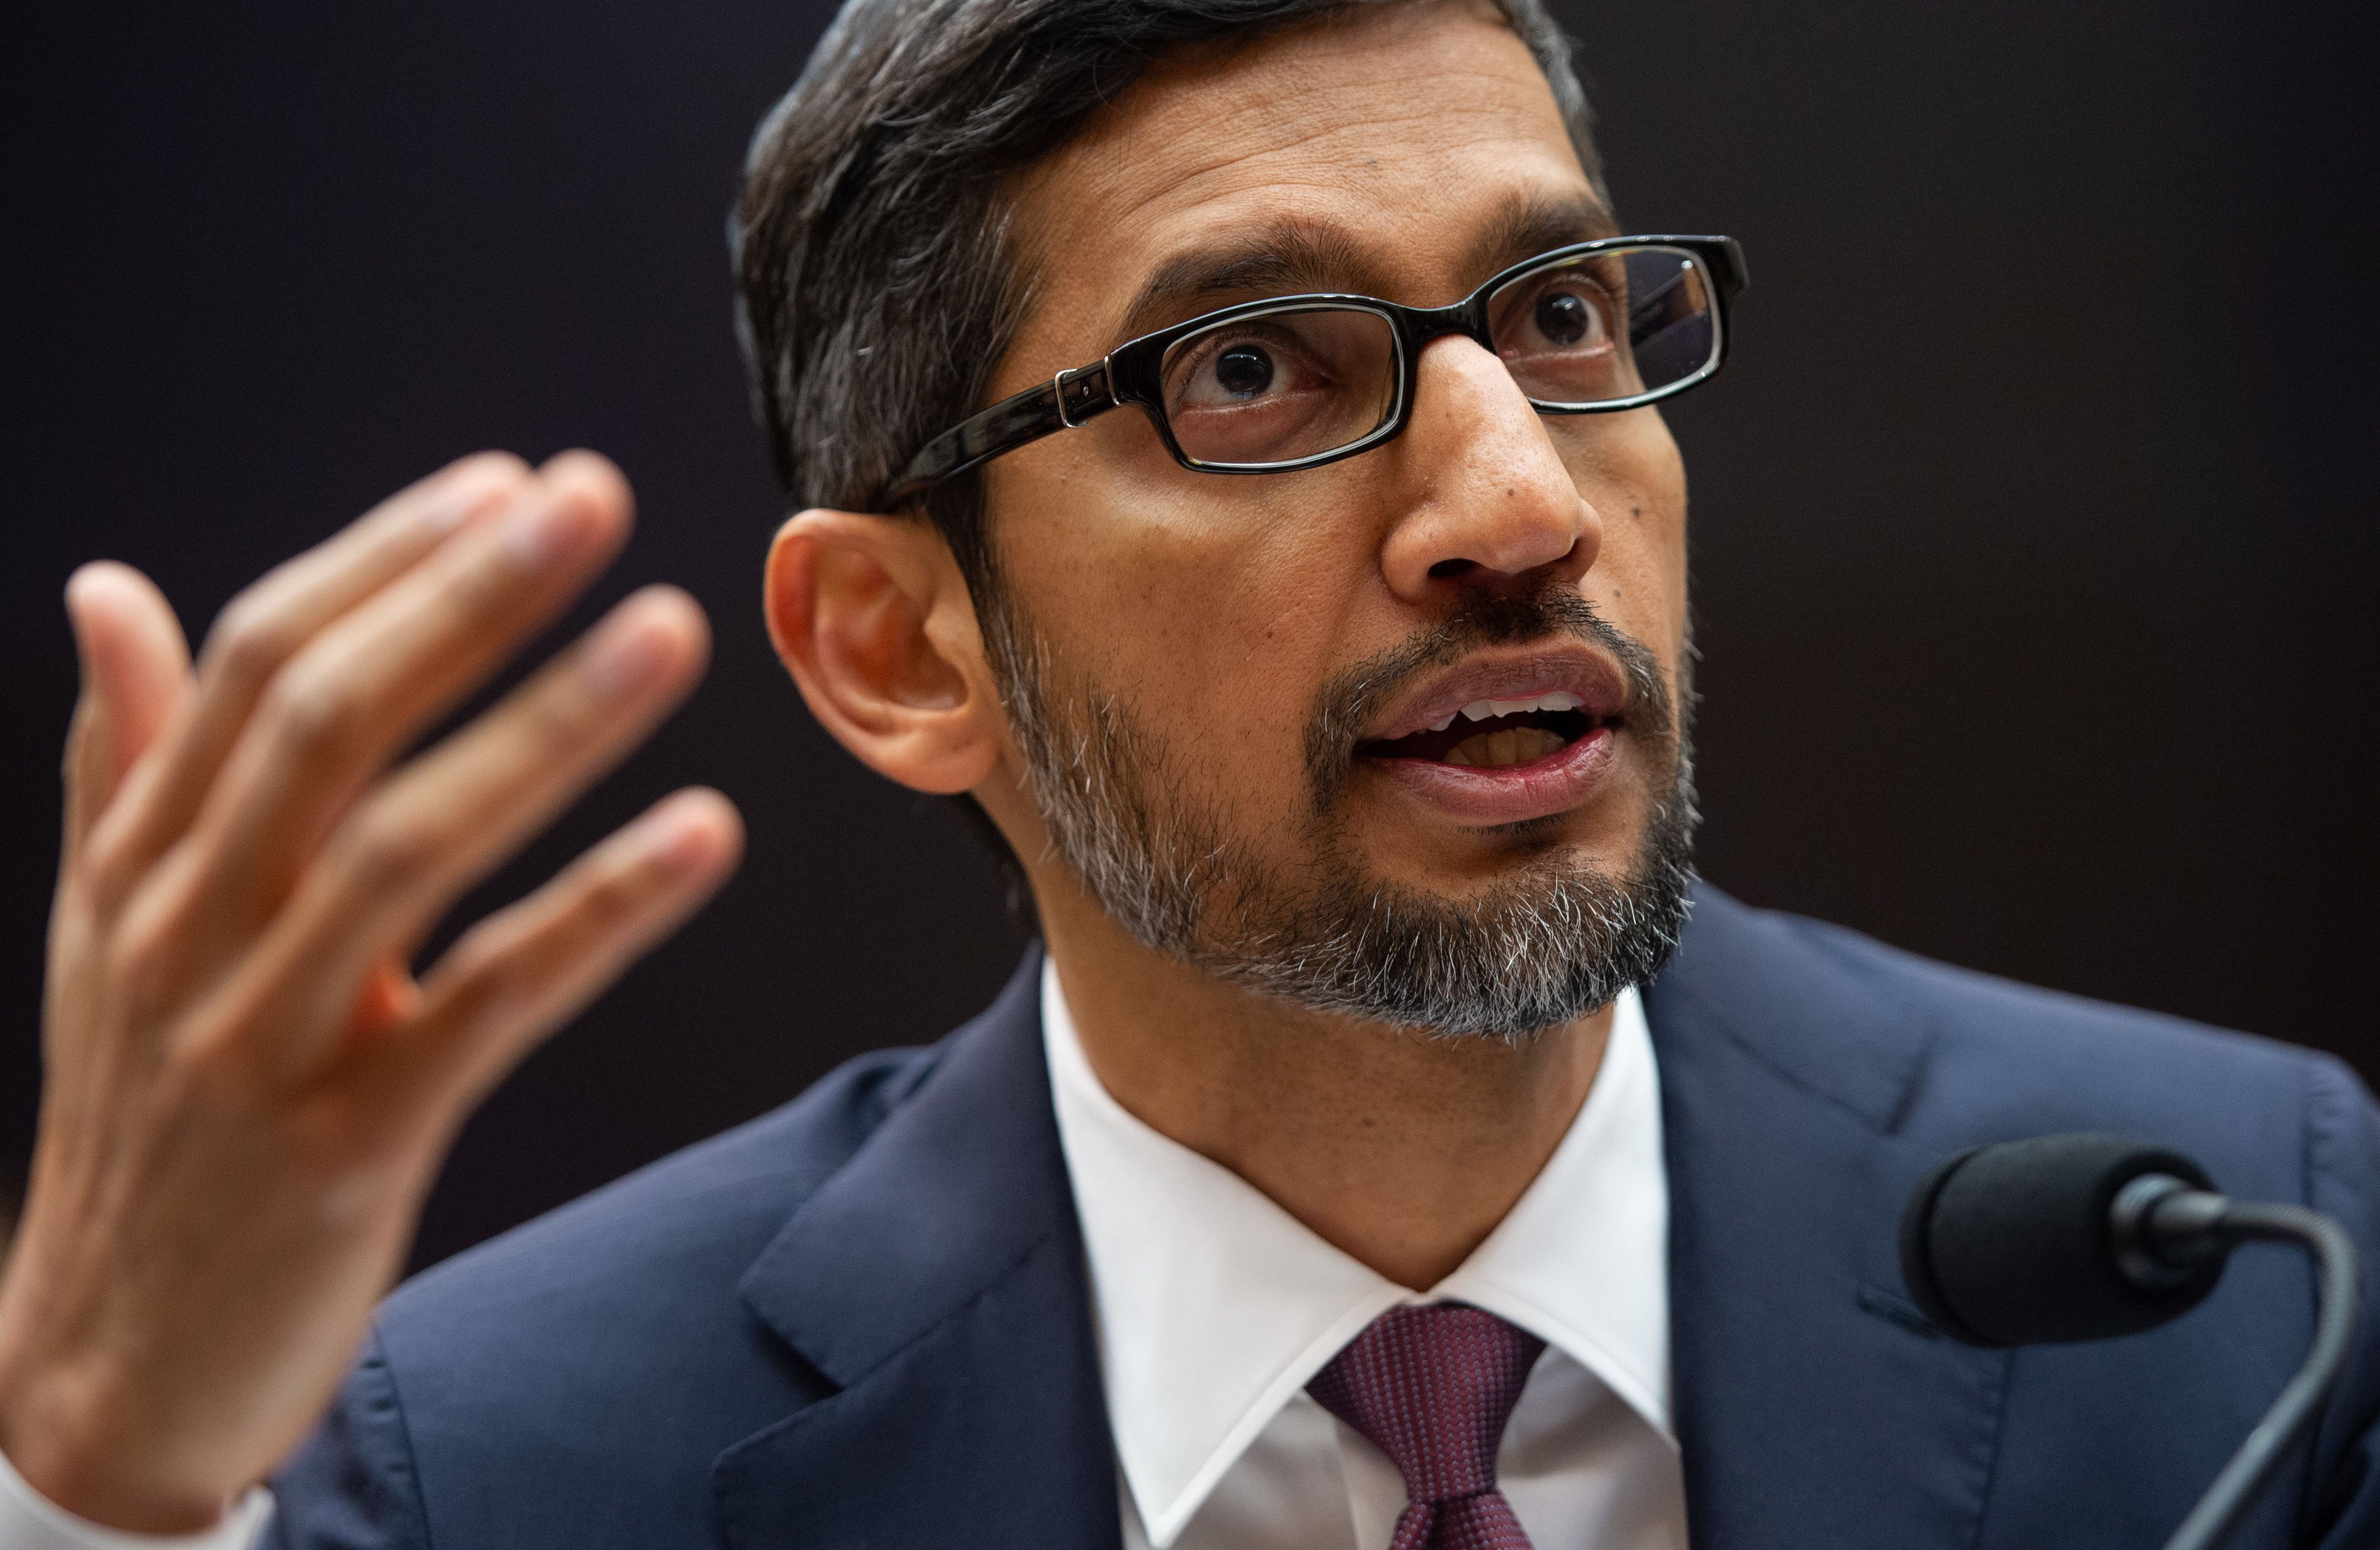 Google CEO says regulating tech could have 'unintended consequences'